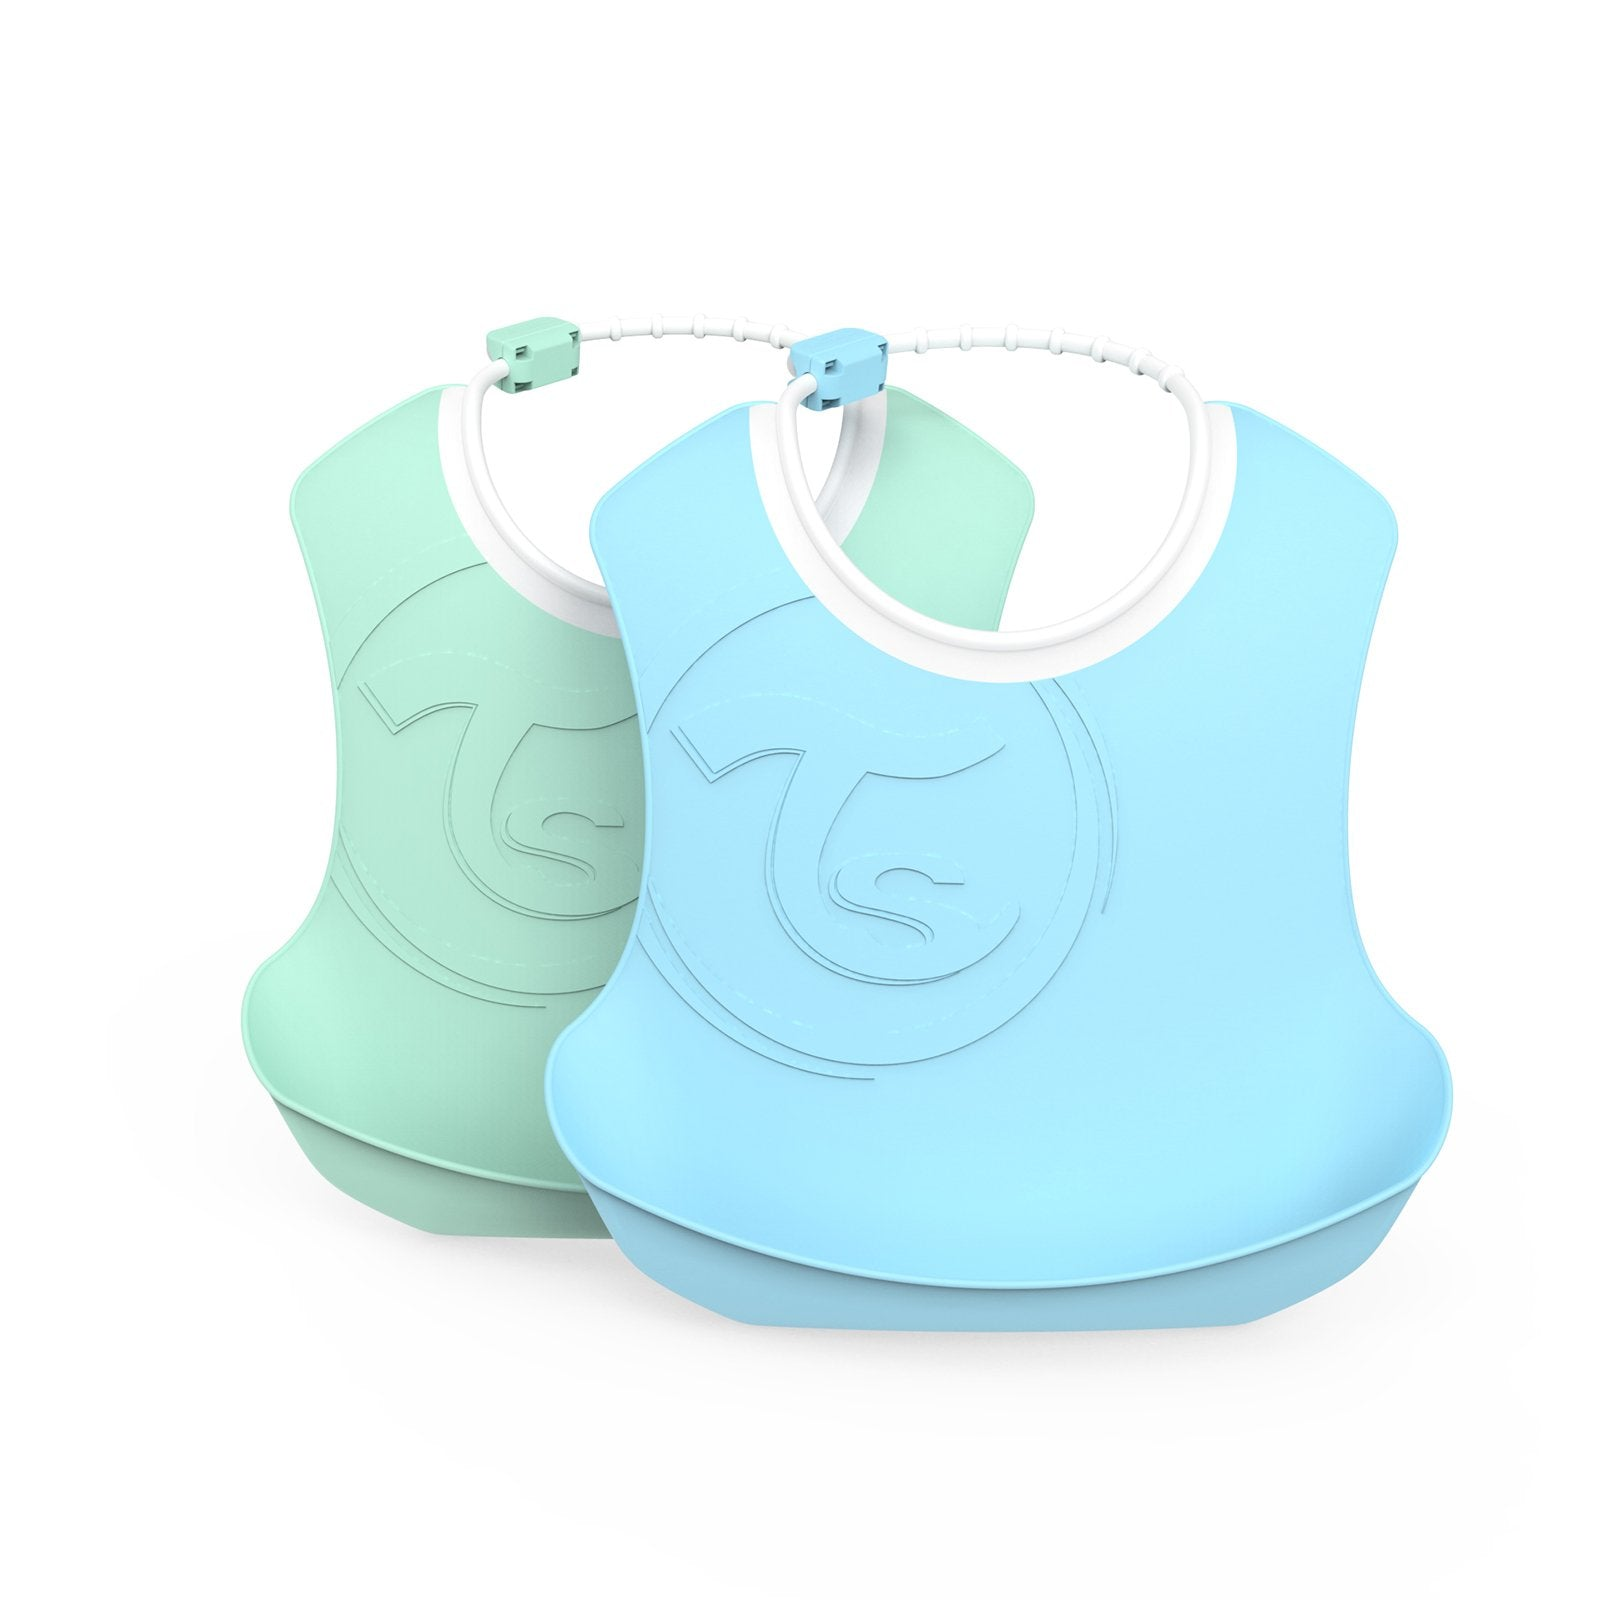 2x Bib 4+m Pastel Blue Green